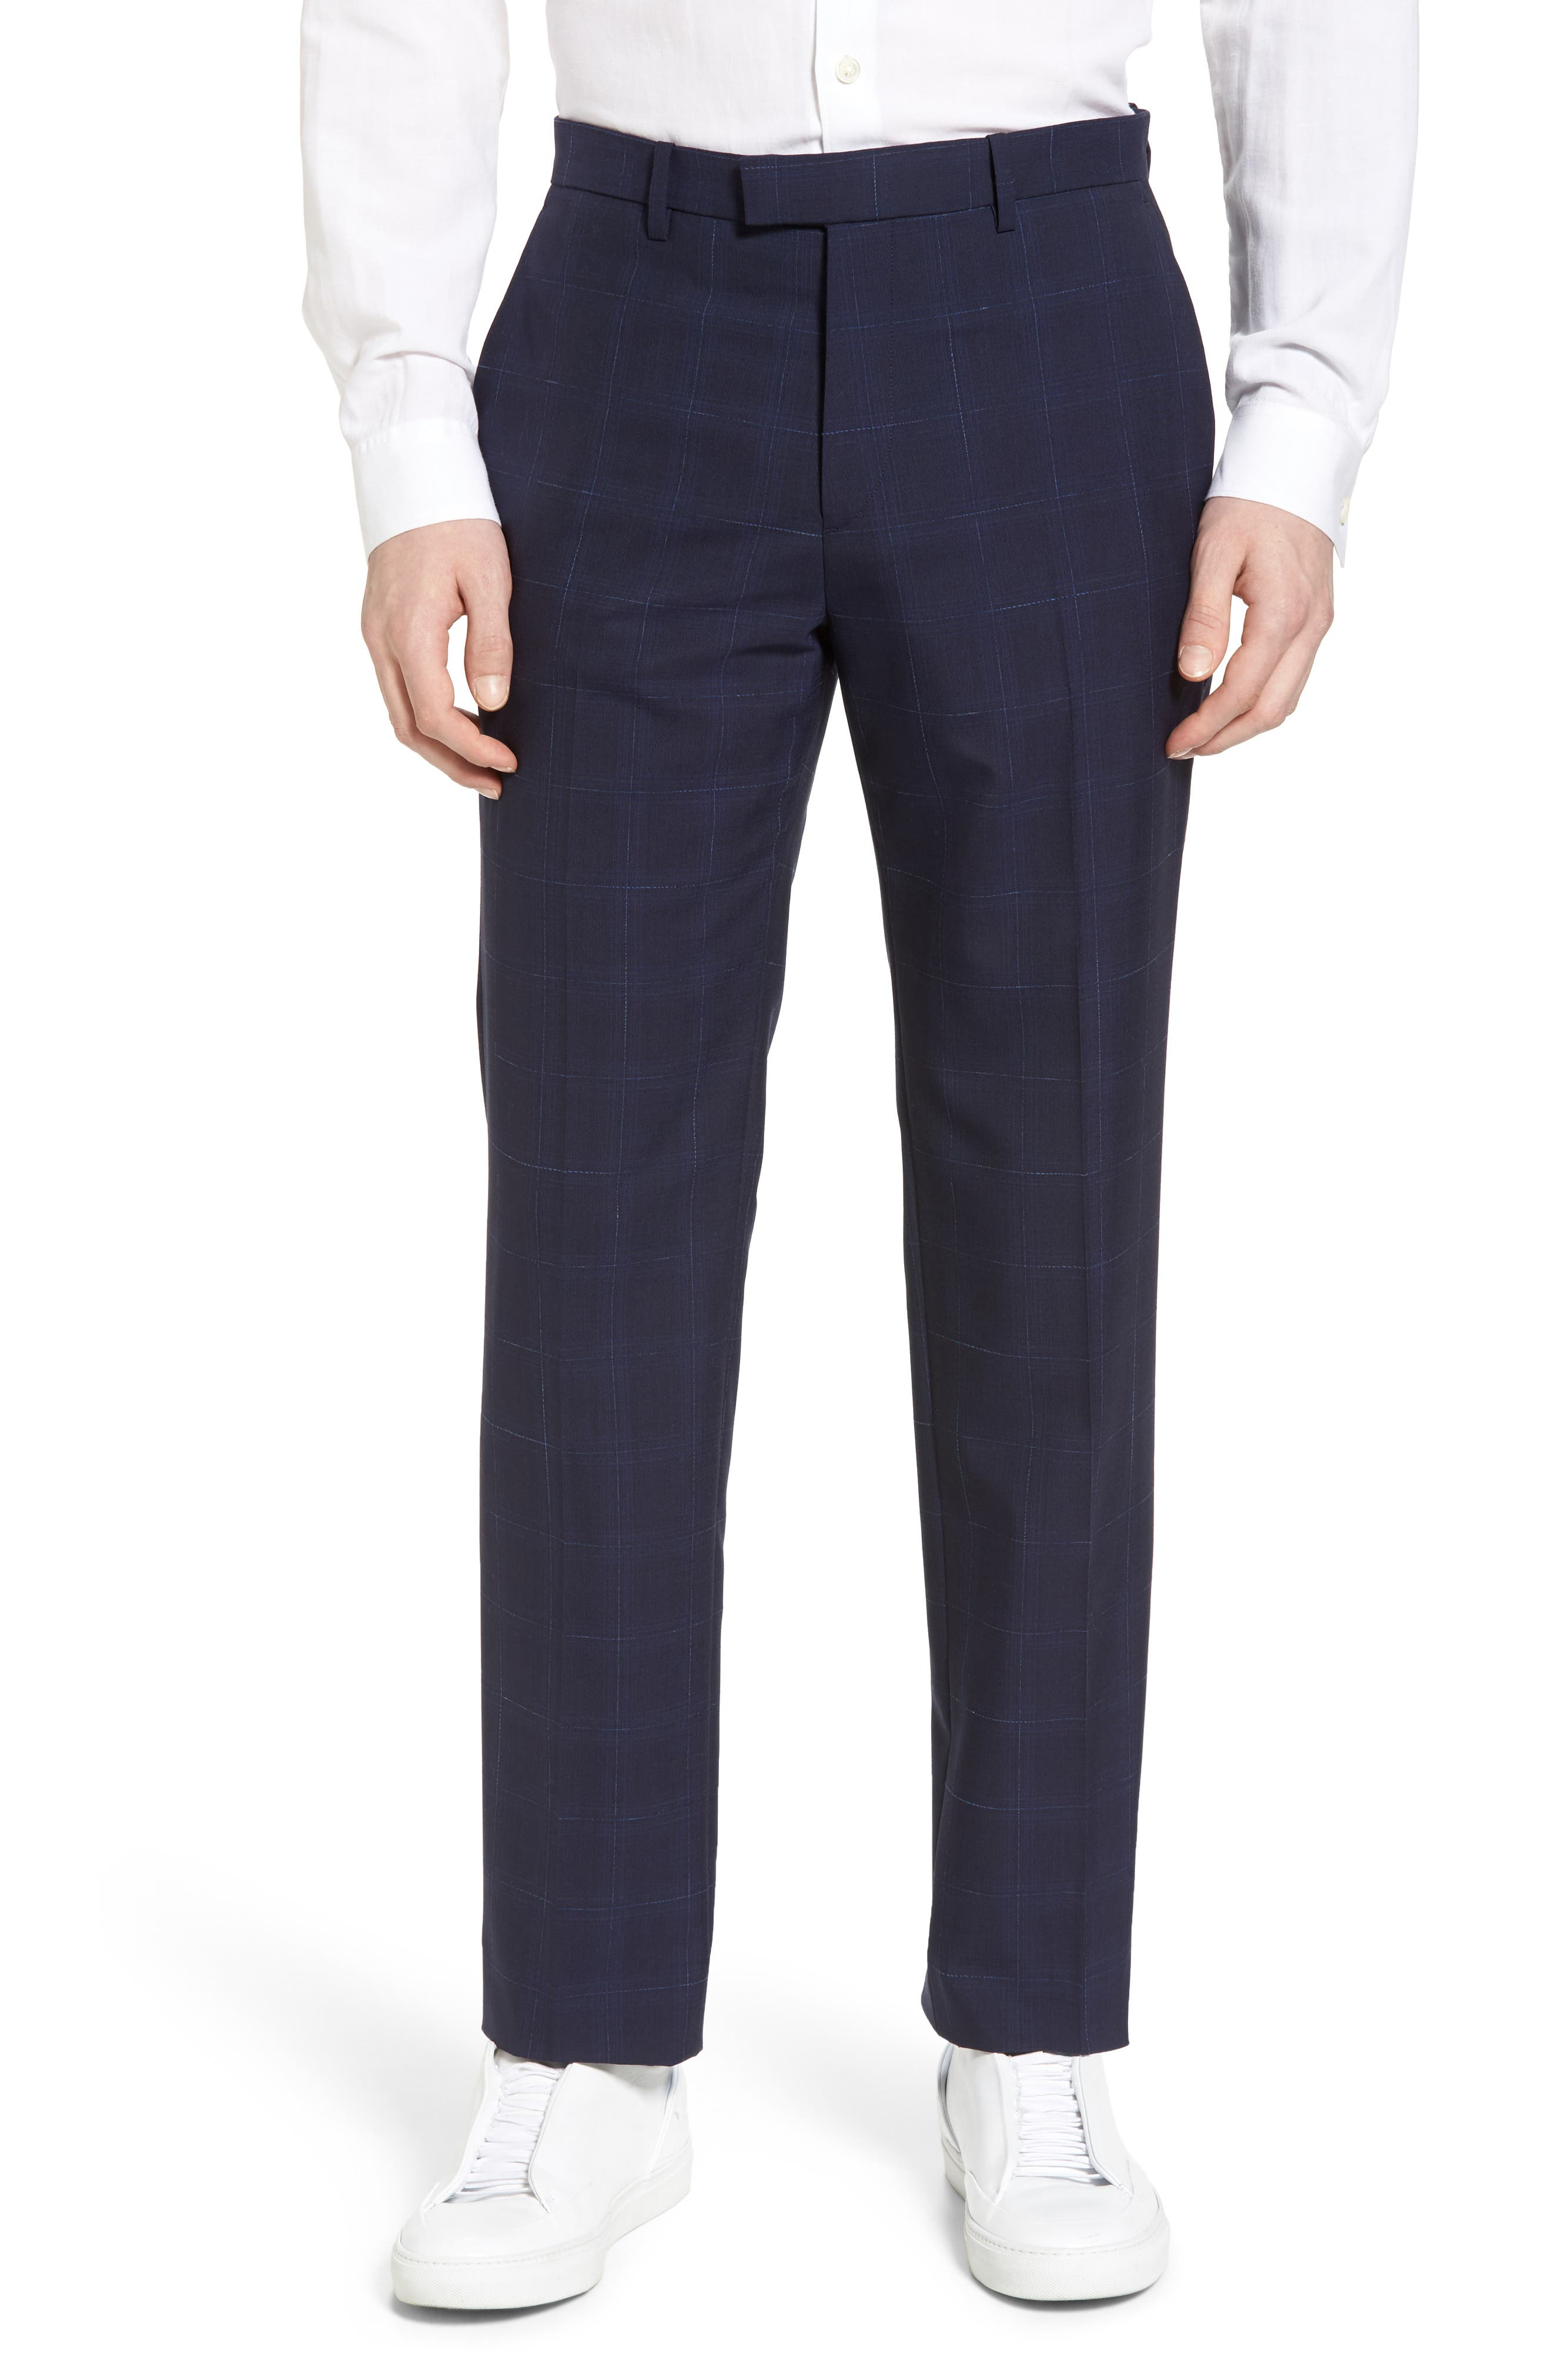 Marlo Flat Front Plaid Wool Trousers,                         Main,                         color, Eclipse